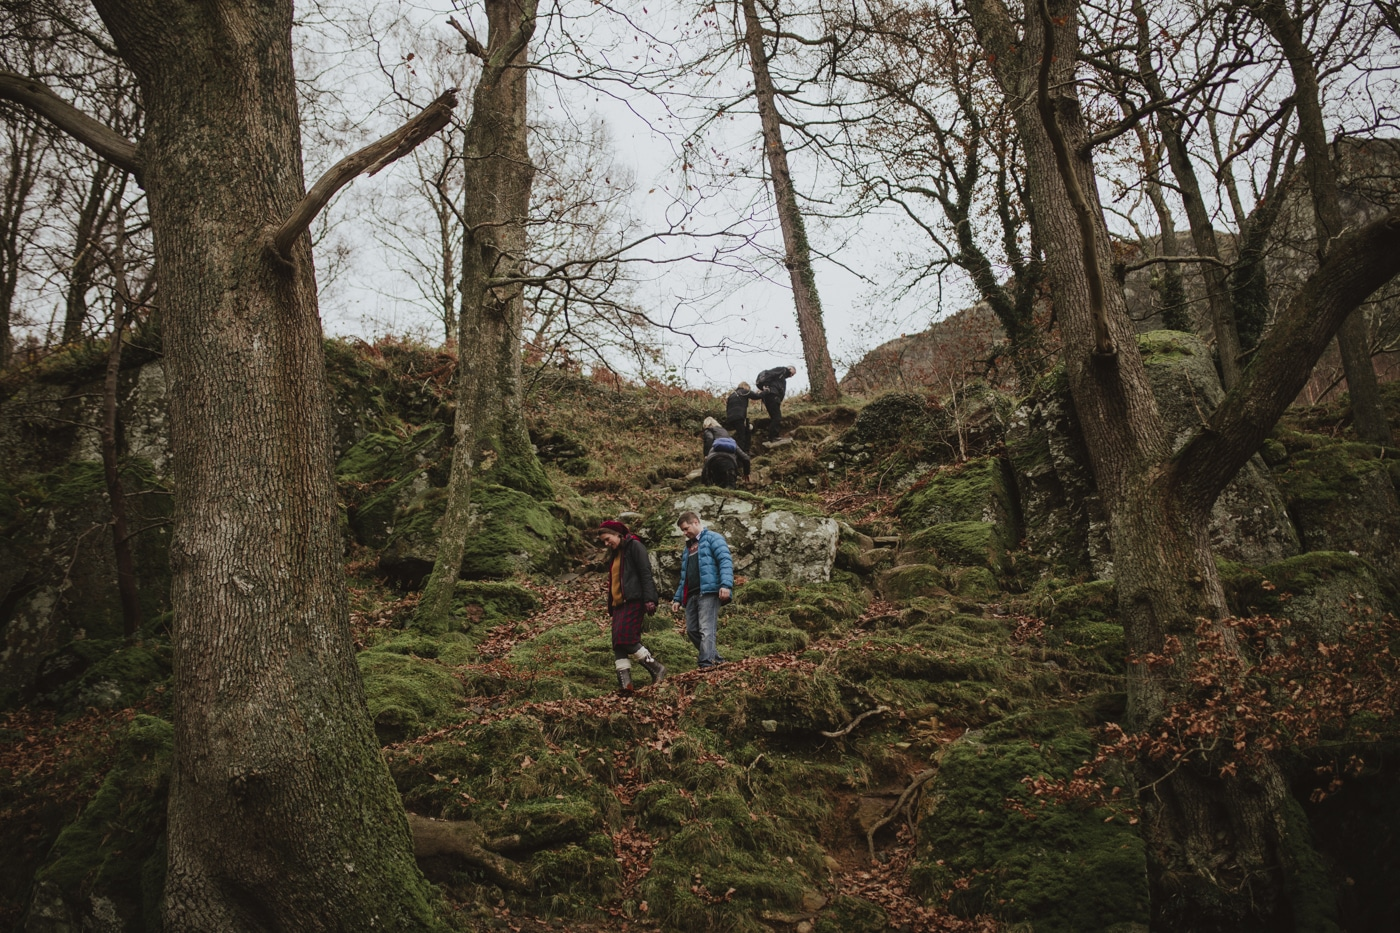 Groug of people walking up a moss covered hill amongst trees in Cumbria